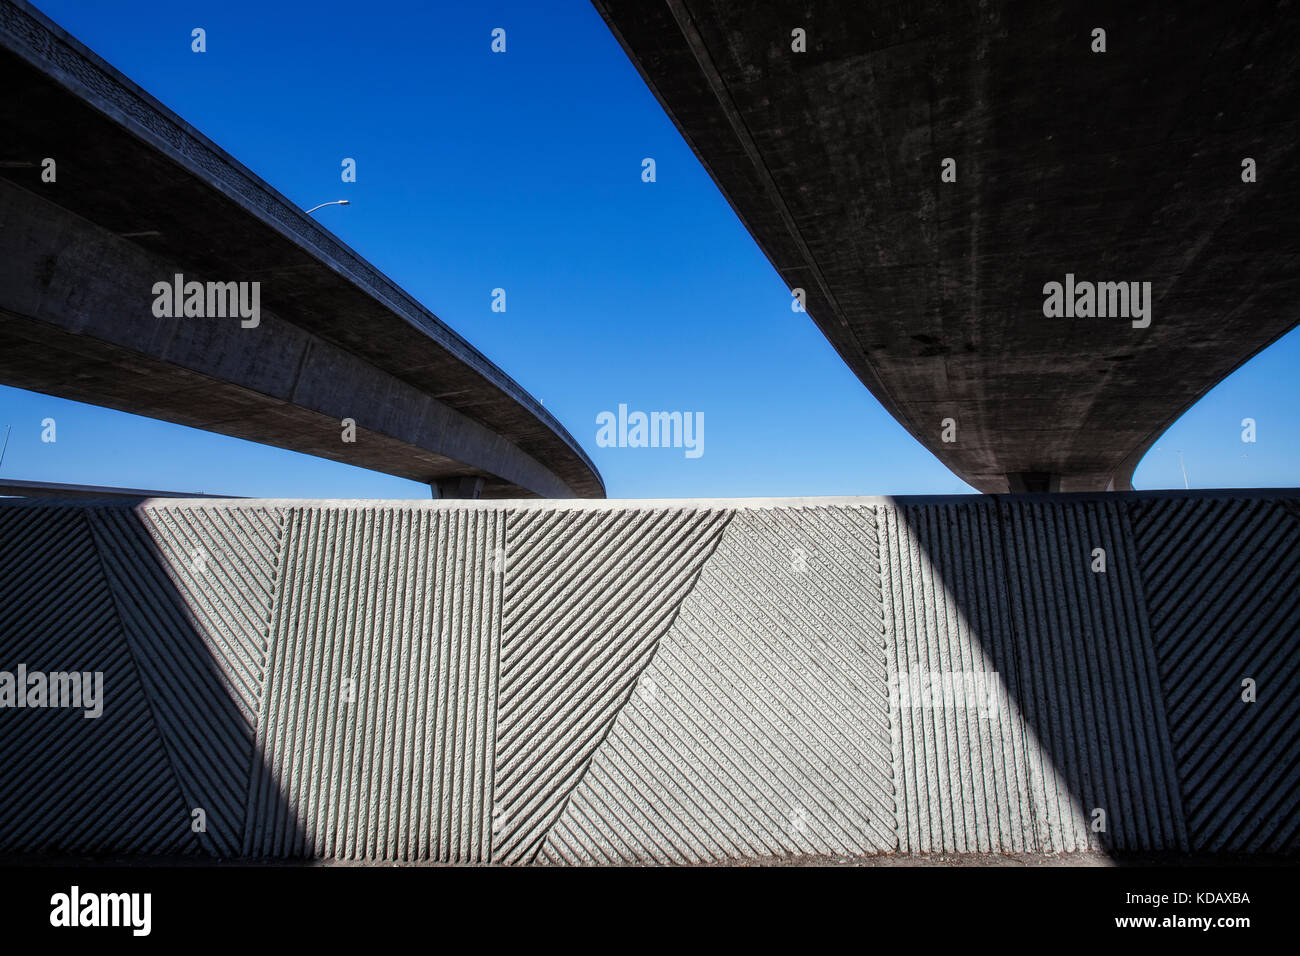 Under the 105 freeway next to Los Angeles River, Long Beach, California, USA - Stock Image